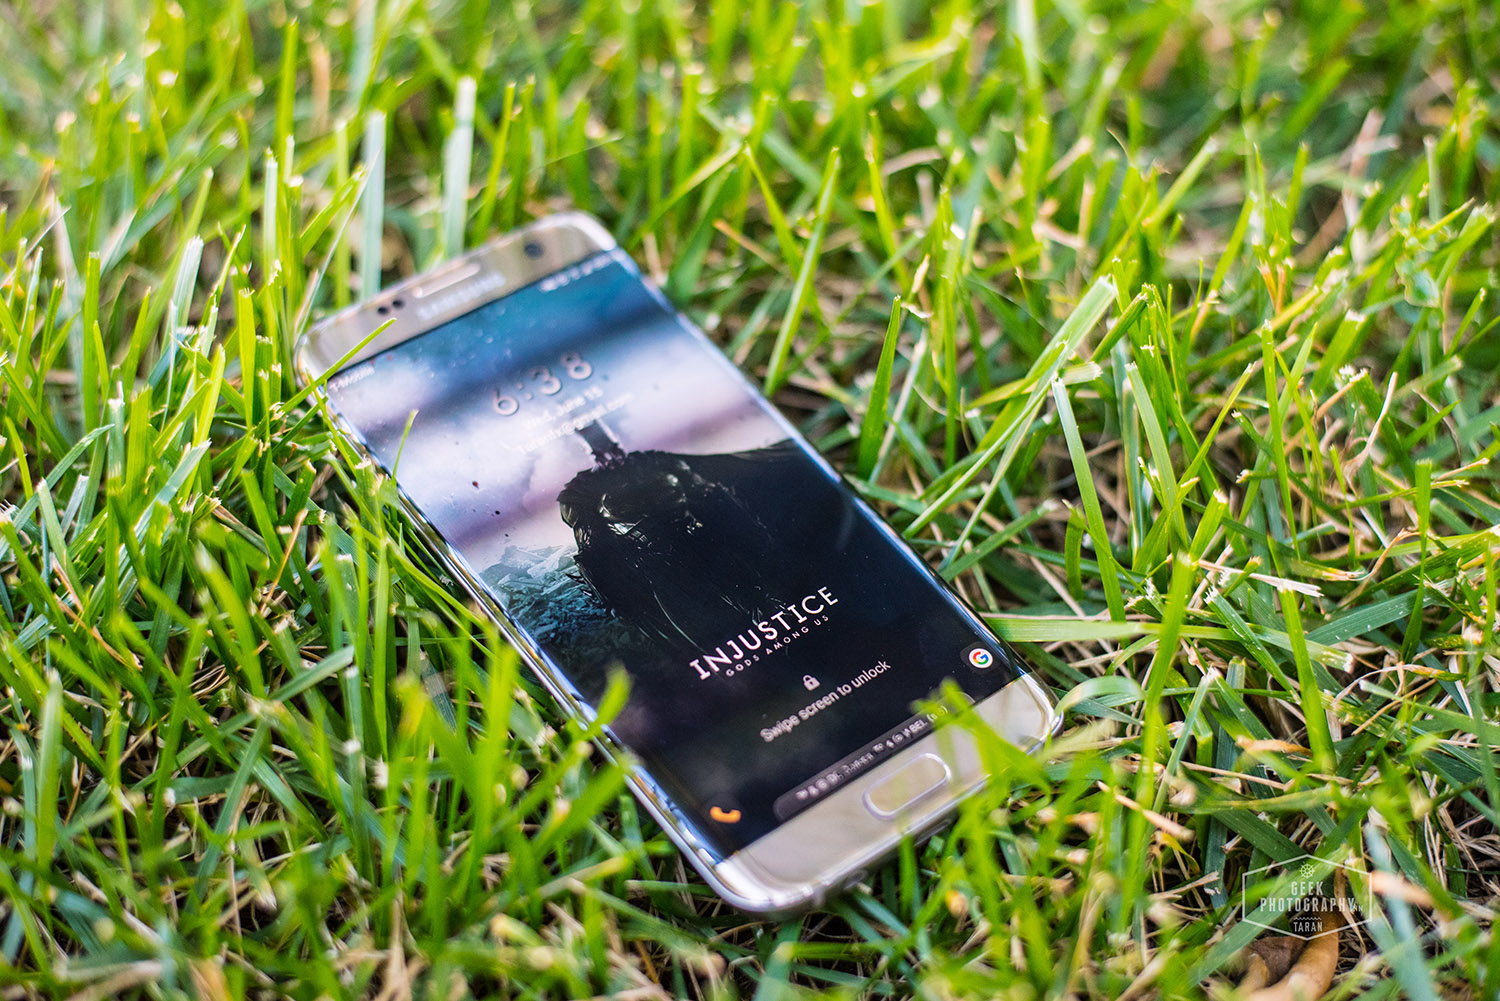 Install Batman v Superman theme on Samsung Galaxy S7 Edge [APK]